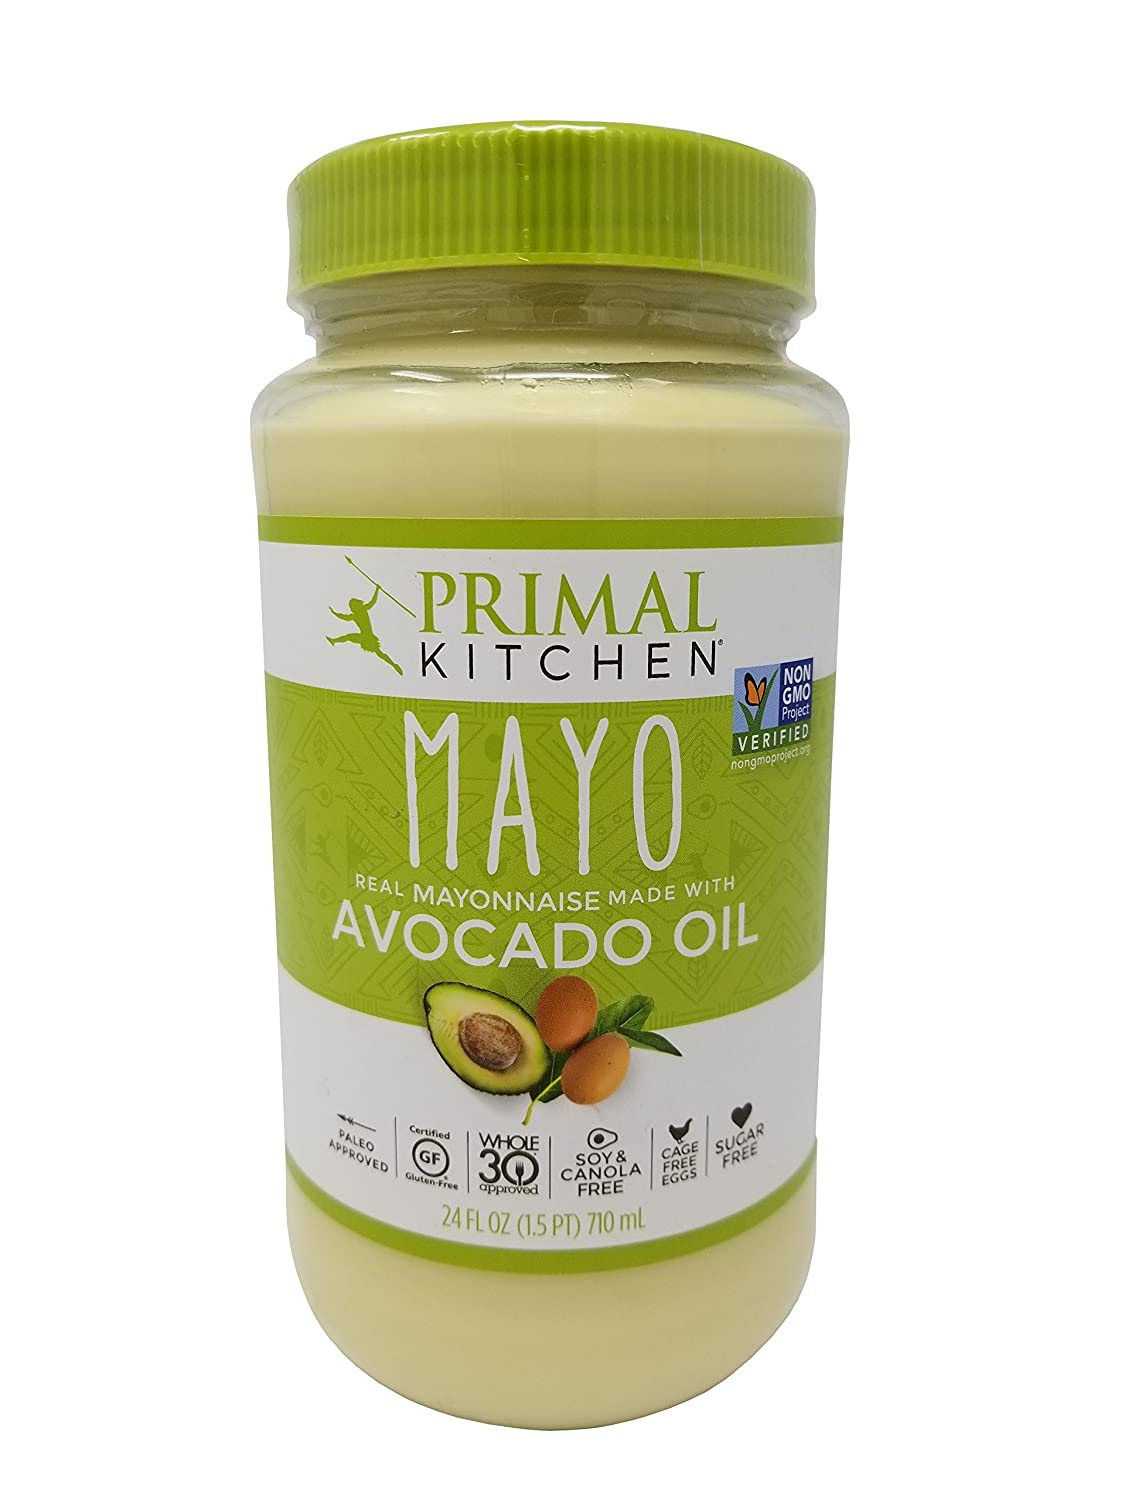 Image of Primal Kitchen mayo with avocado oil